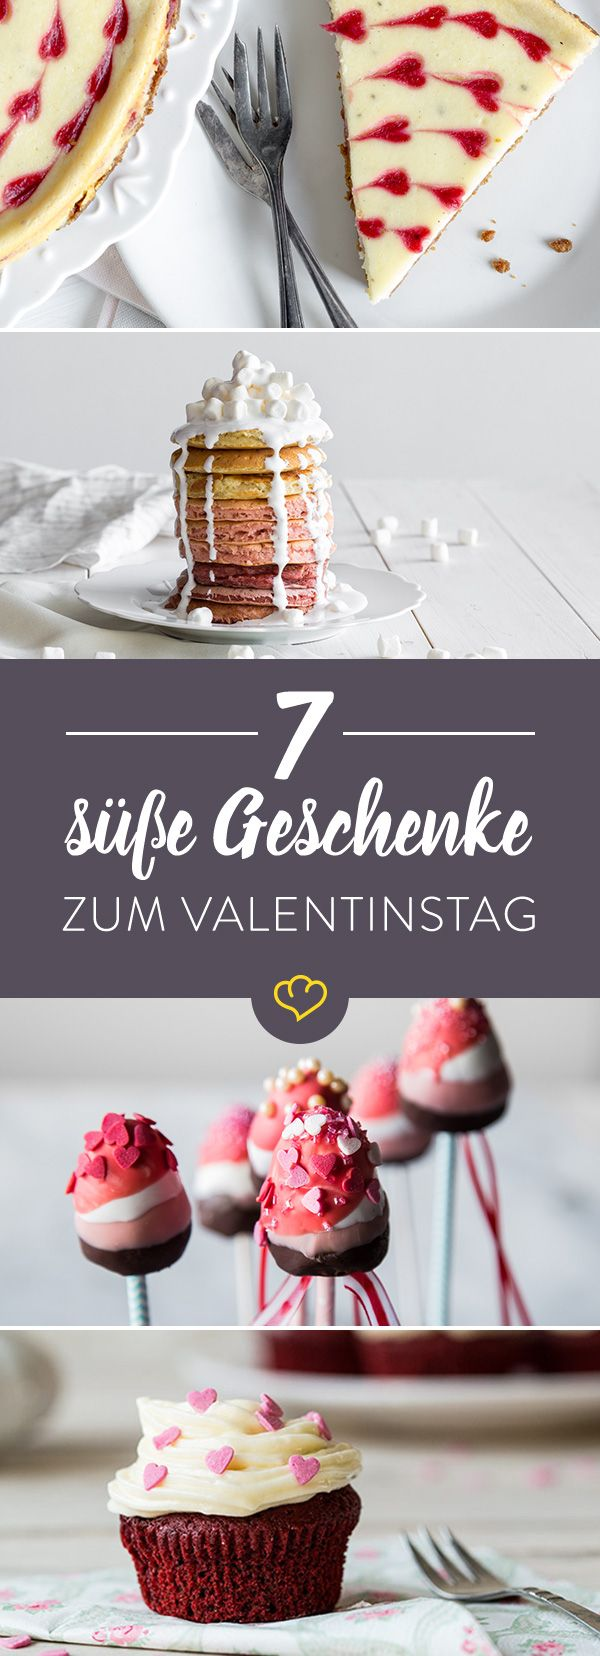 zuckers e rezepte zum valentinstag mit liebe schenken. Black Bedroom Furniture Sets. Home Design Ideas